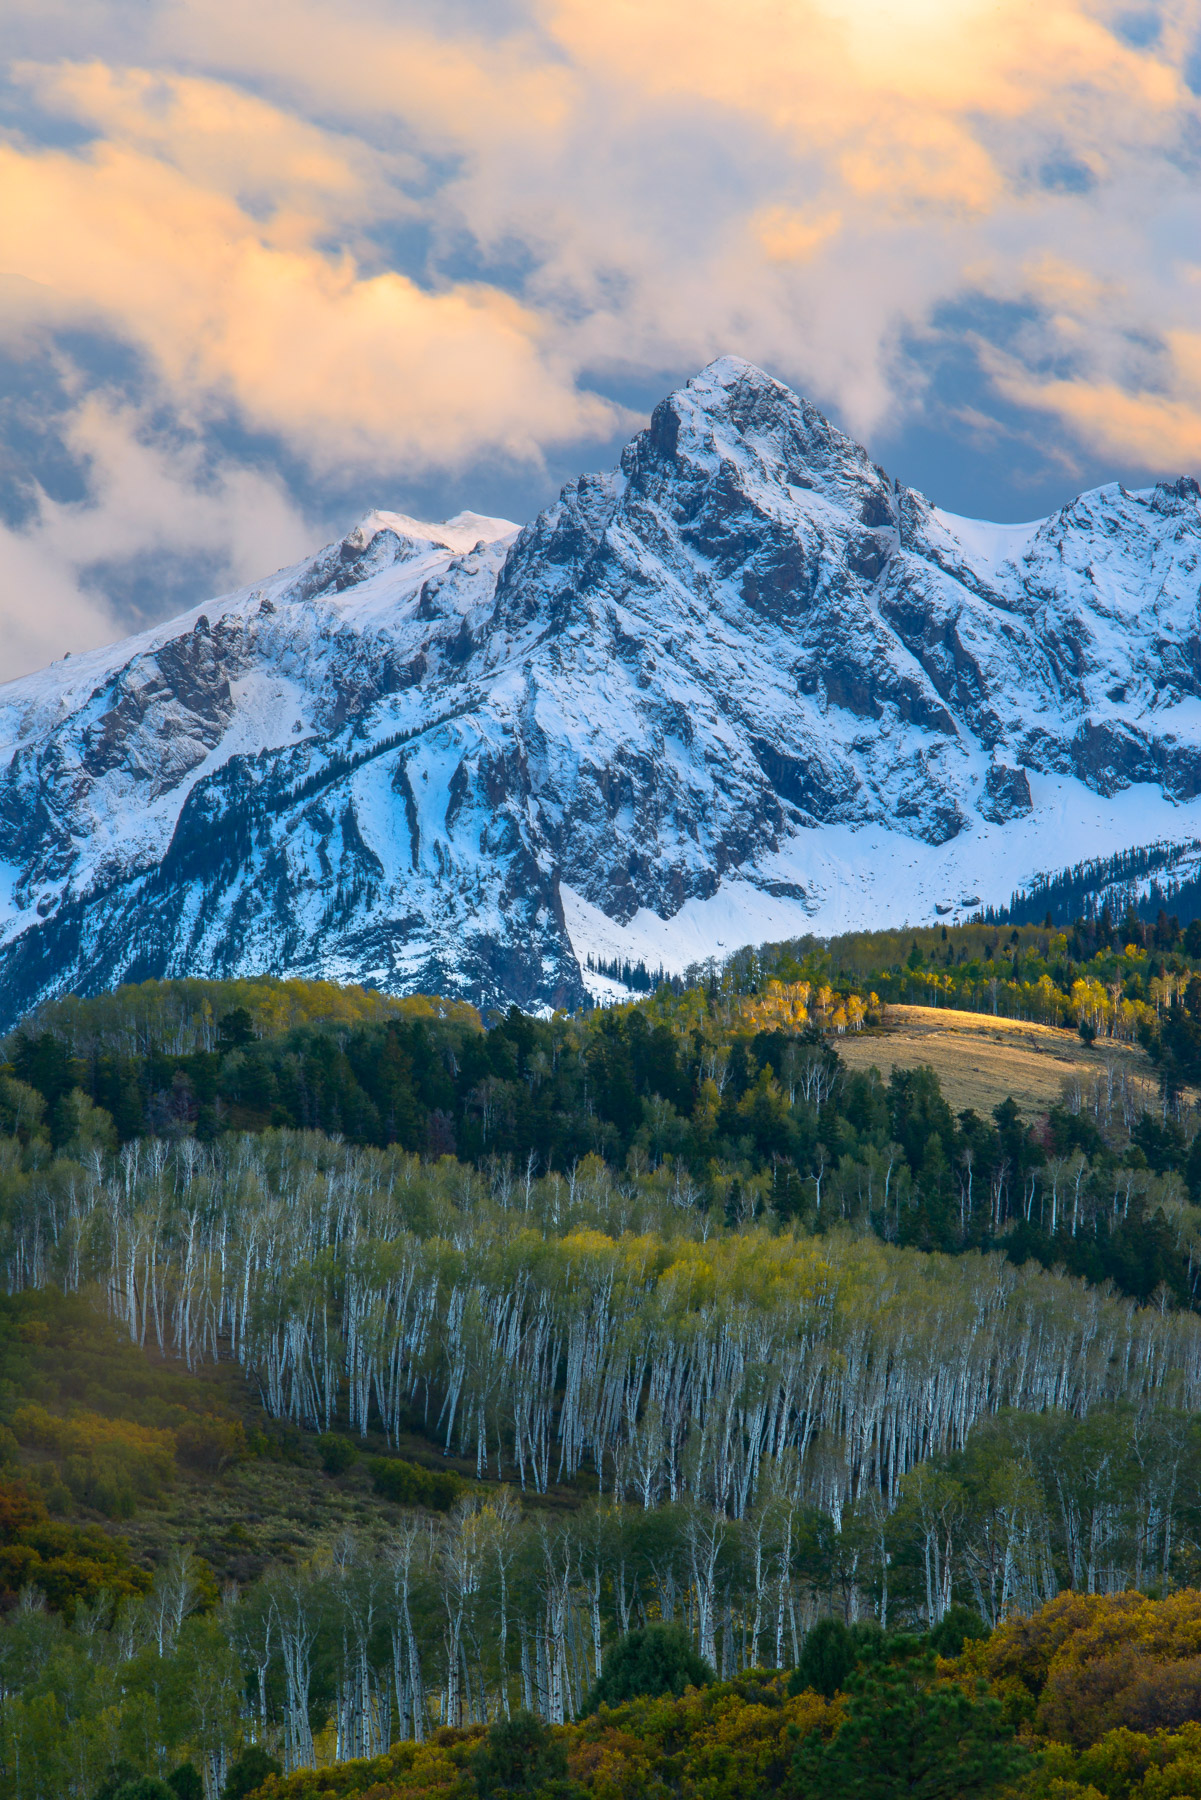 Rugged peaks with fresh snow and autumn Aspens from Dallas Divide, San Juan Mountains, Colorado. Available Print Sizes: 12x18...